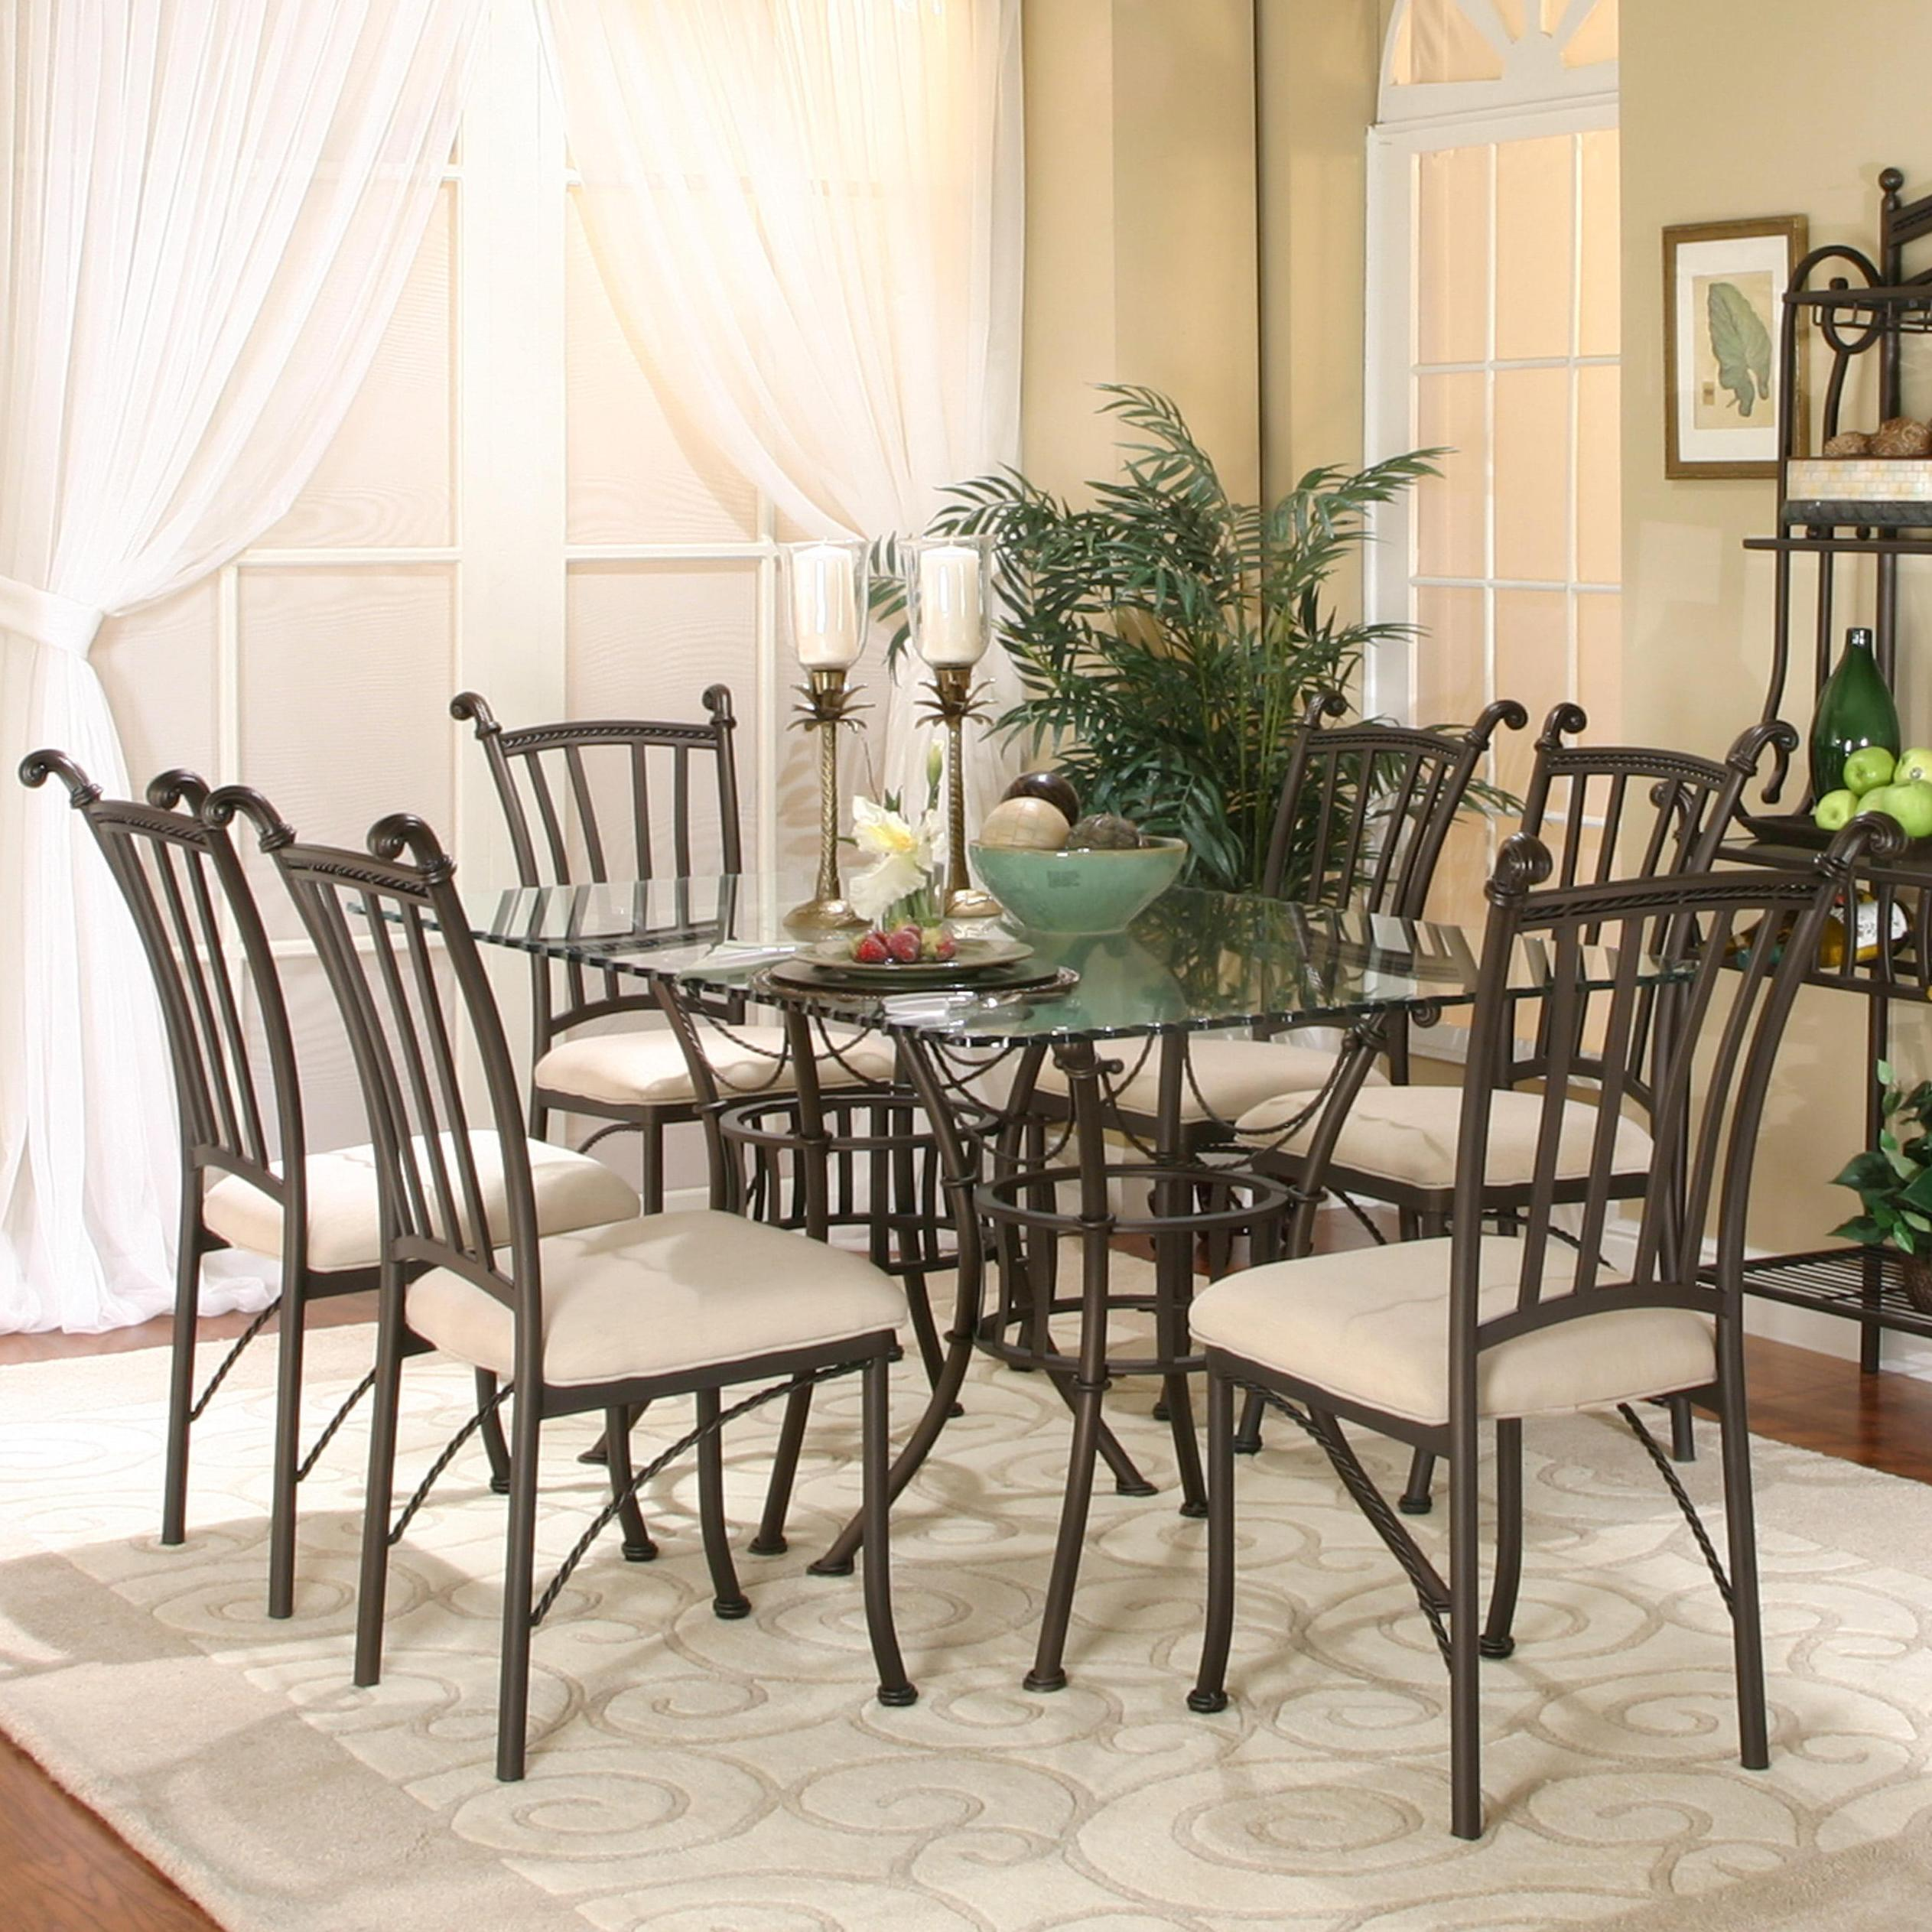 7 piece rectangular glass table with chairs by cramco inc for Dining room tables 11 piece